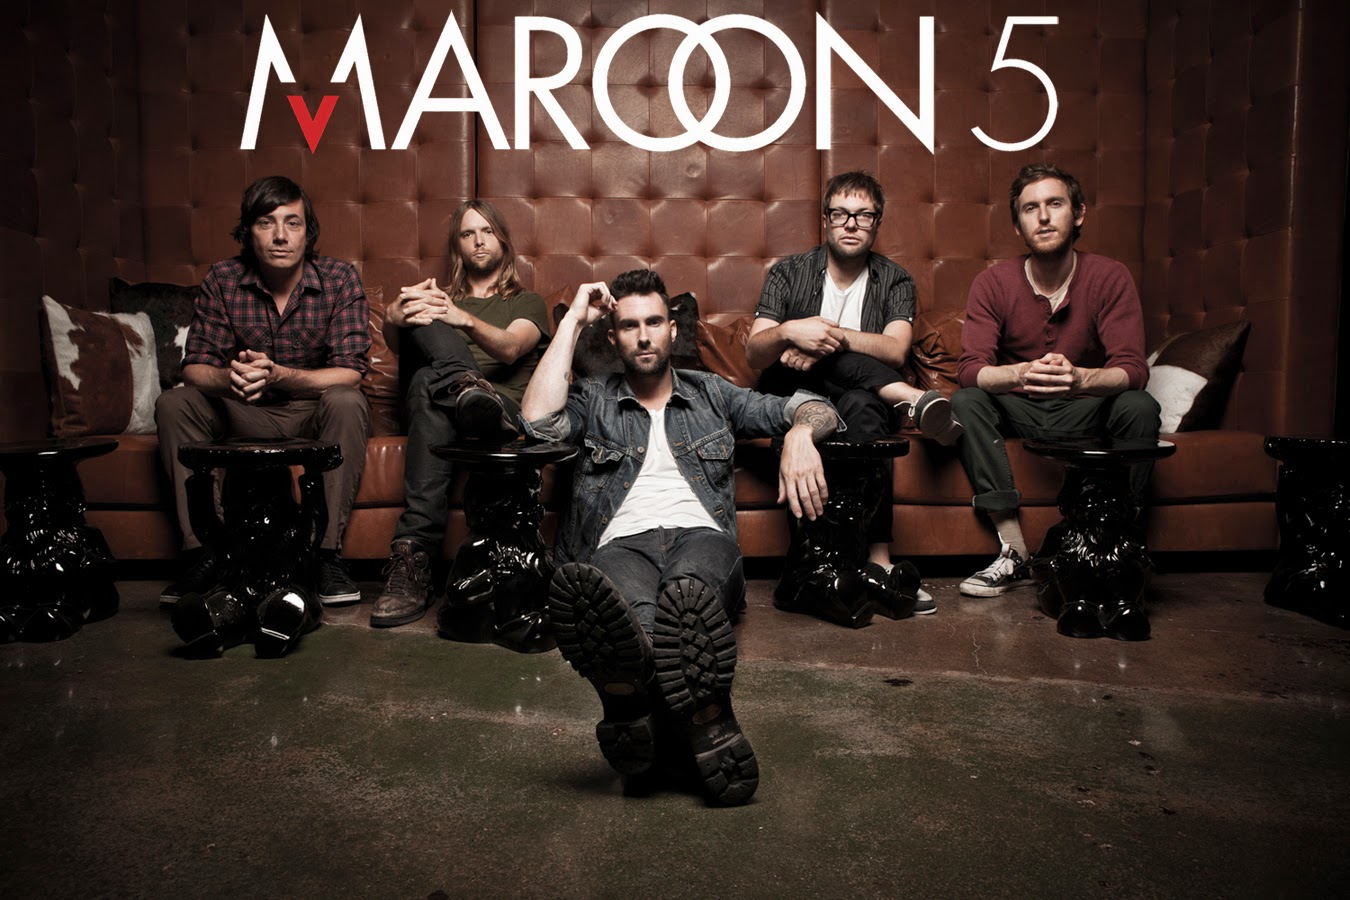 Adam Levine Maroon 5 band poster